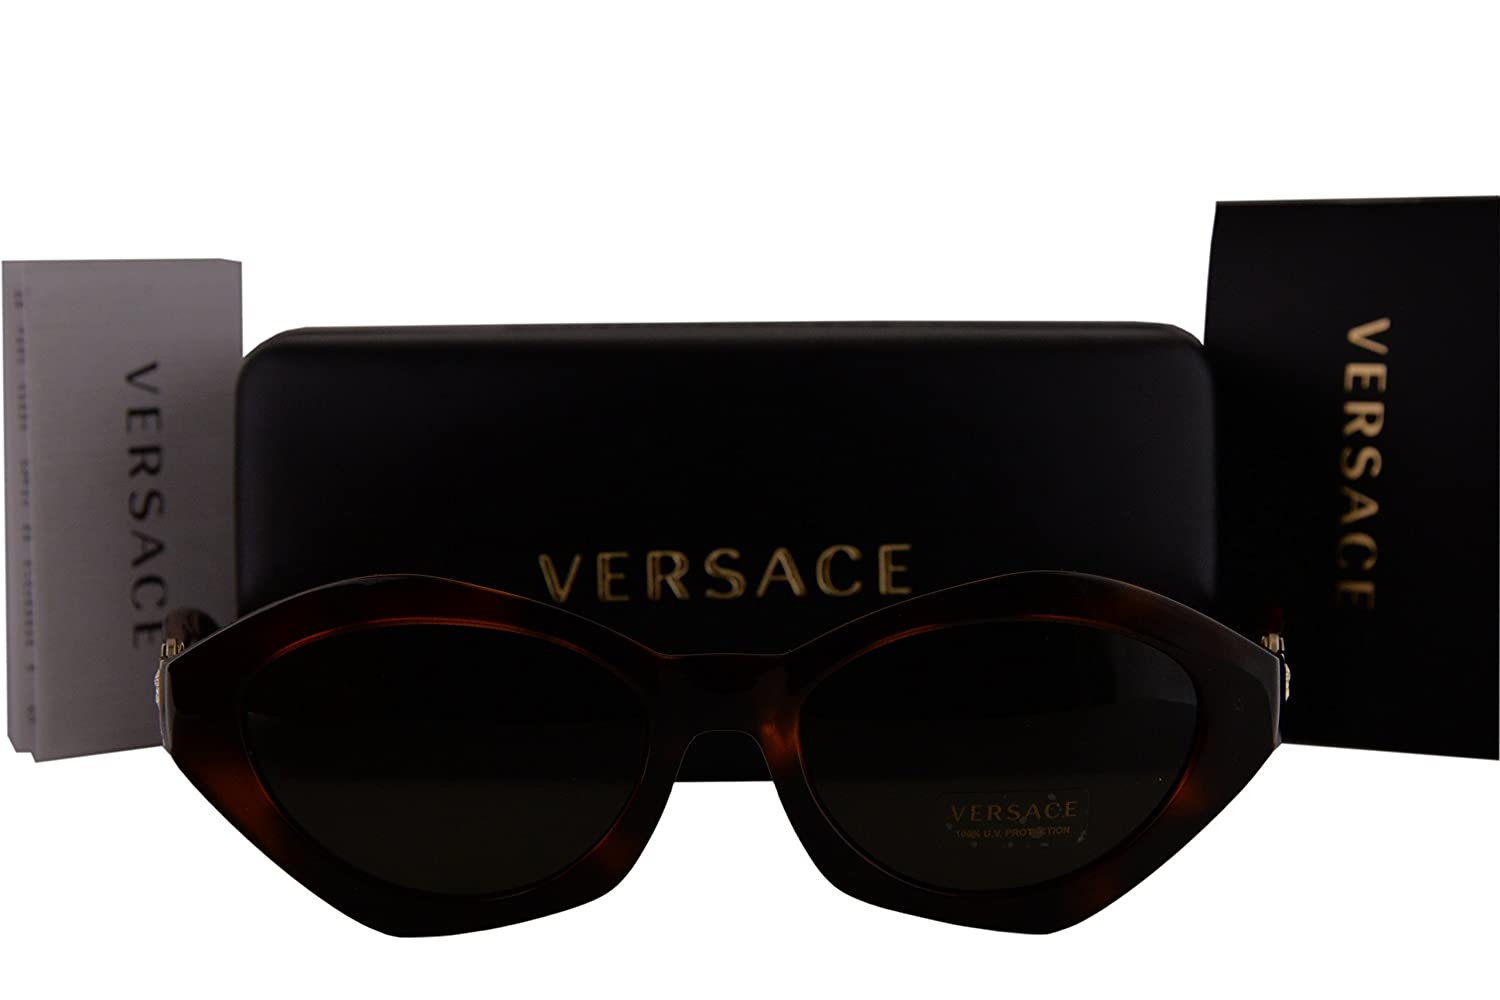 0368ce6ae89 Amazon.com  Versace VE4334 Sunglasses Havana w Green Lens 511971 VE 4334   Sports   Outdoors